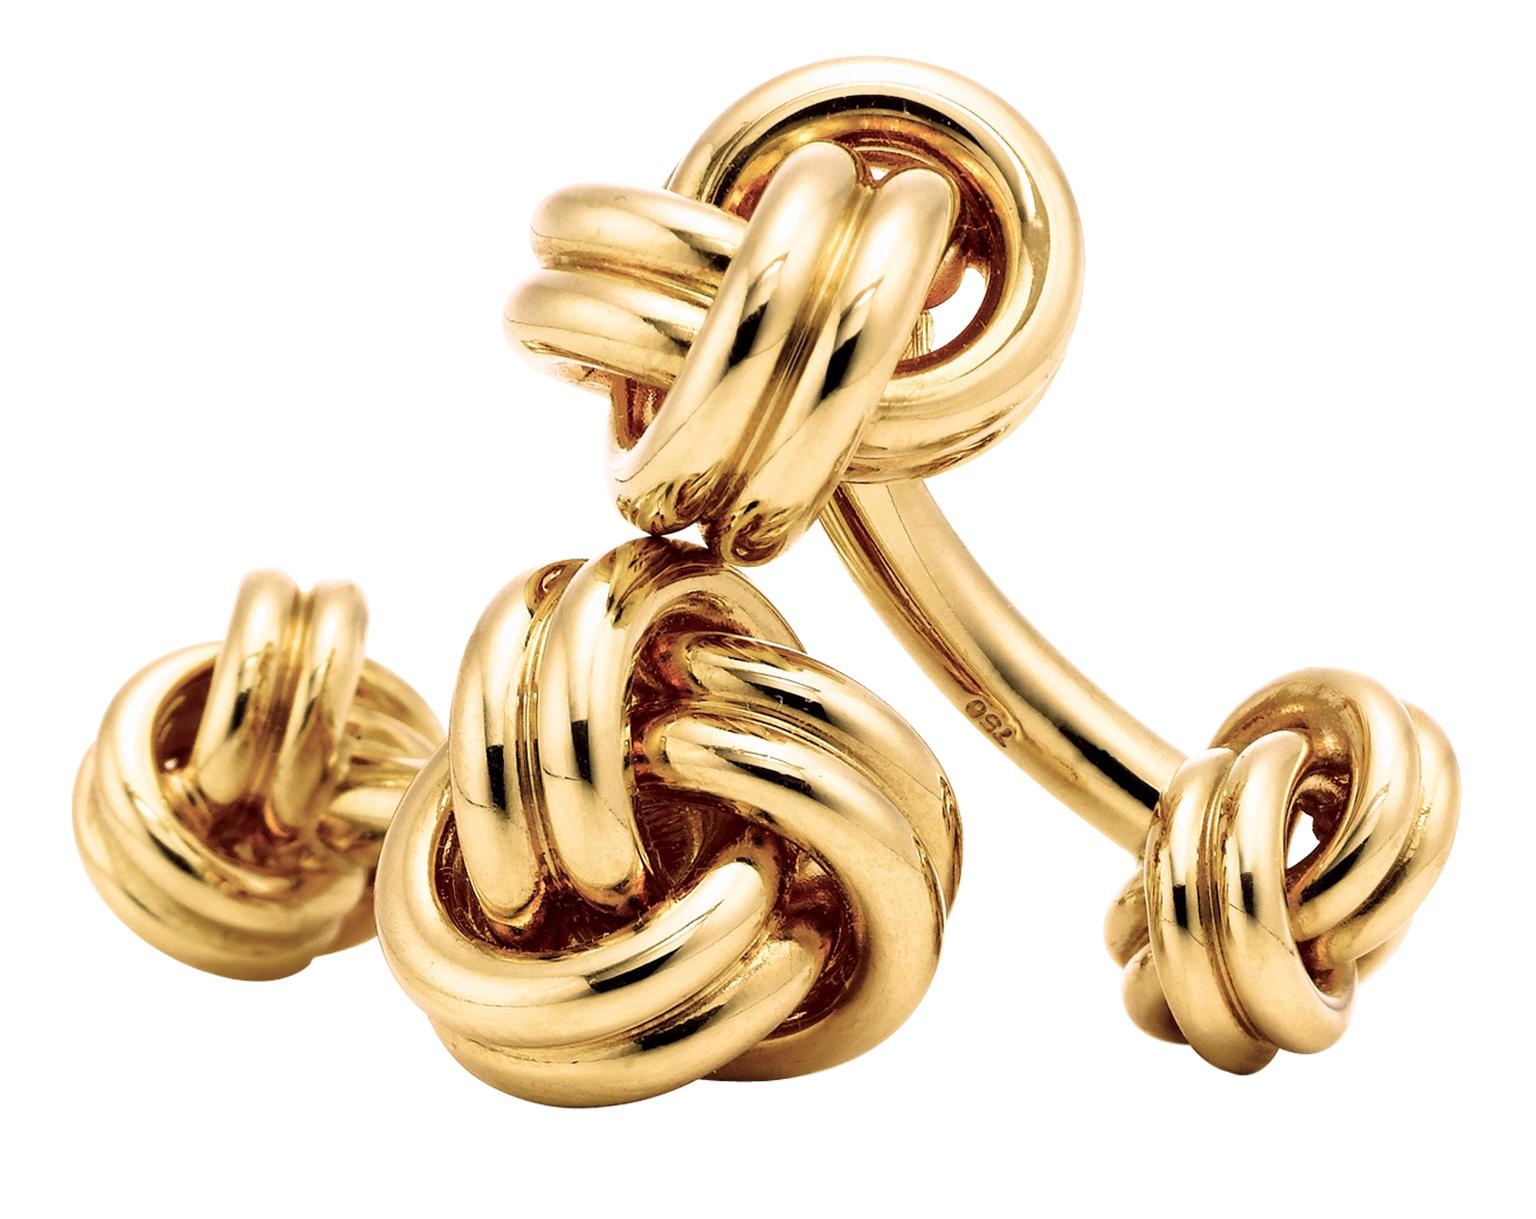 Tiffany & Co Gold Knot Cufflinks_20130412_Zoom